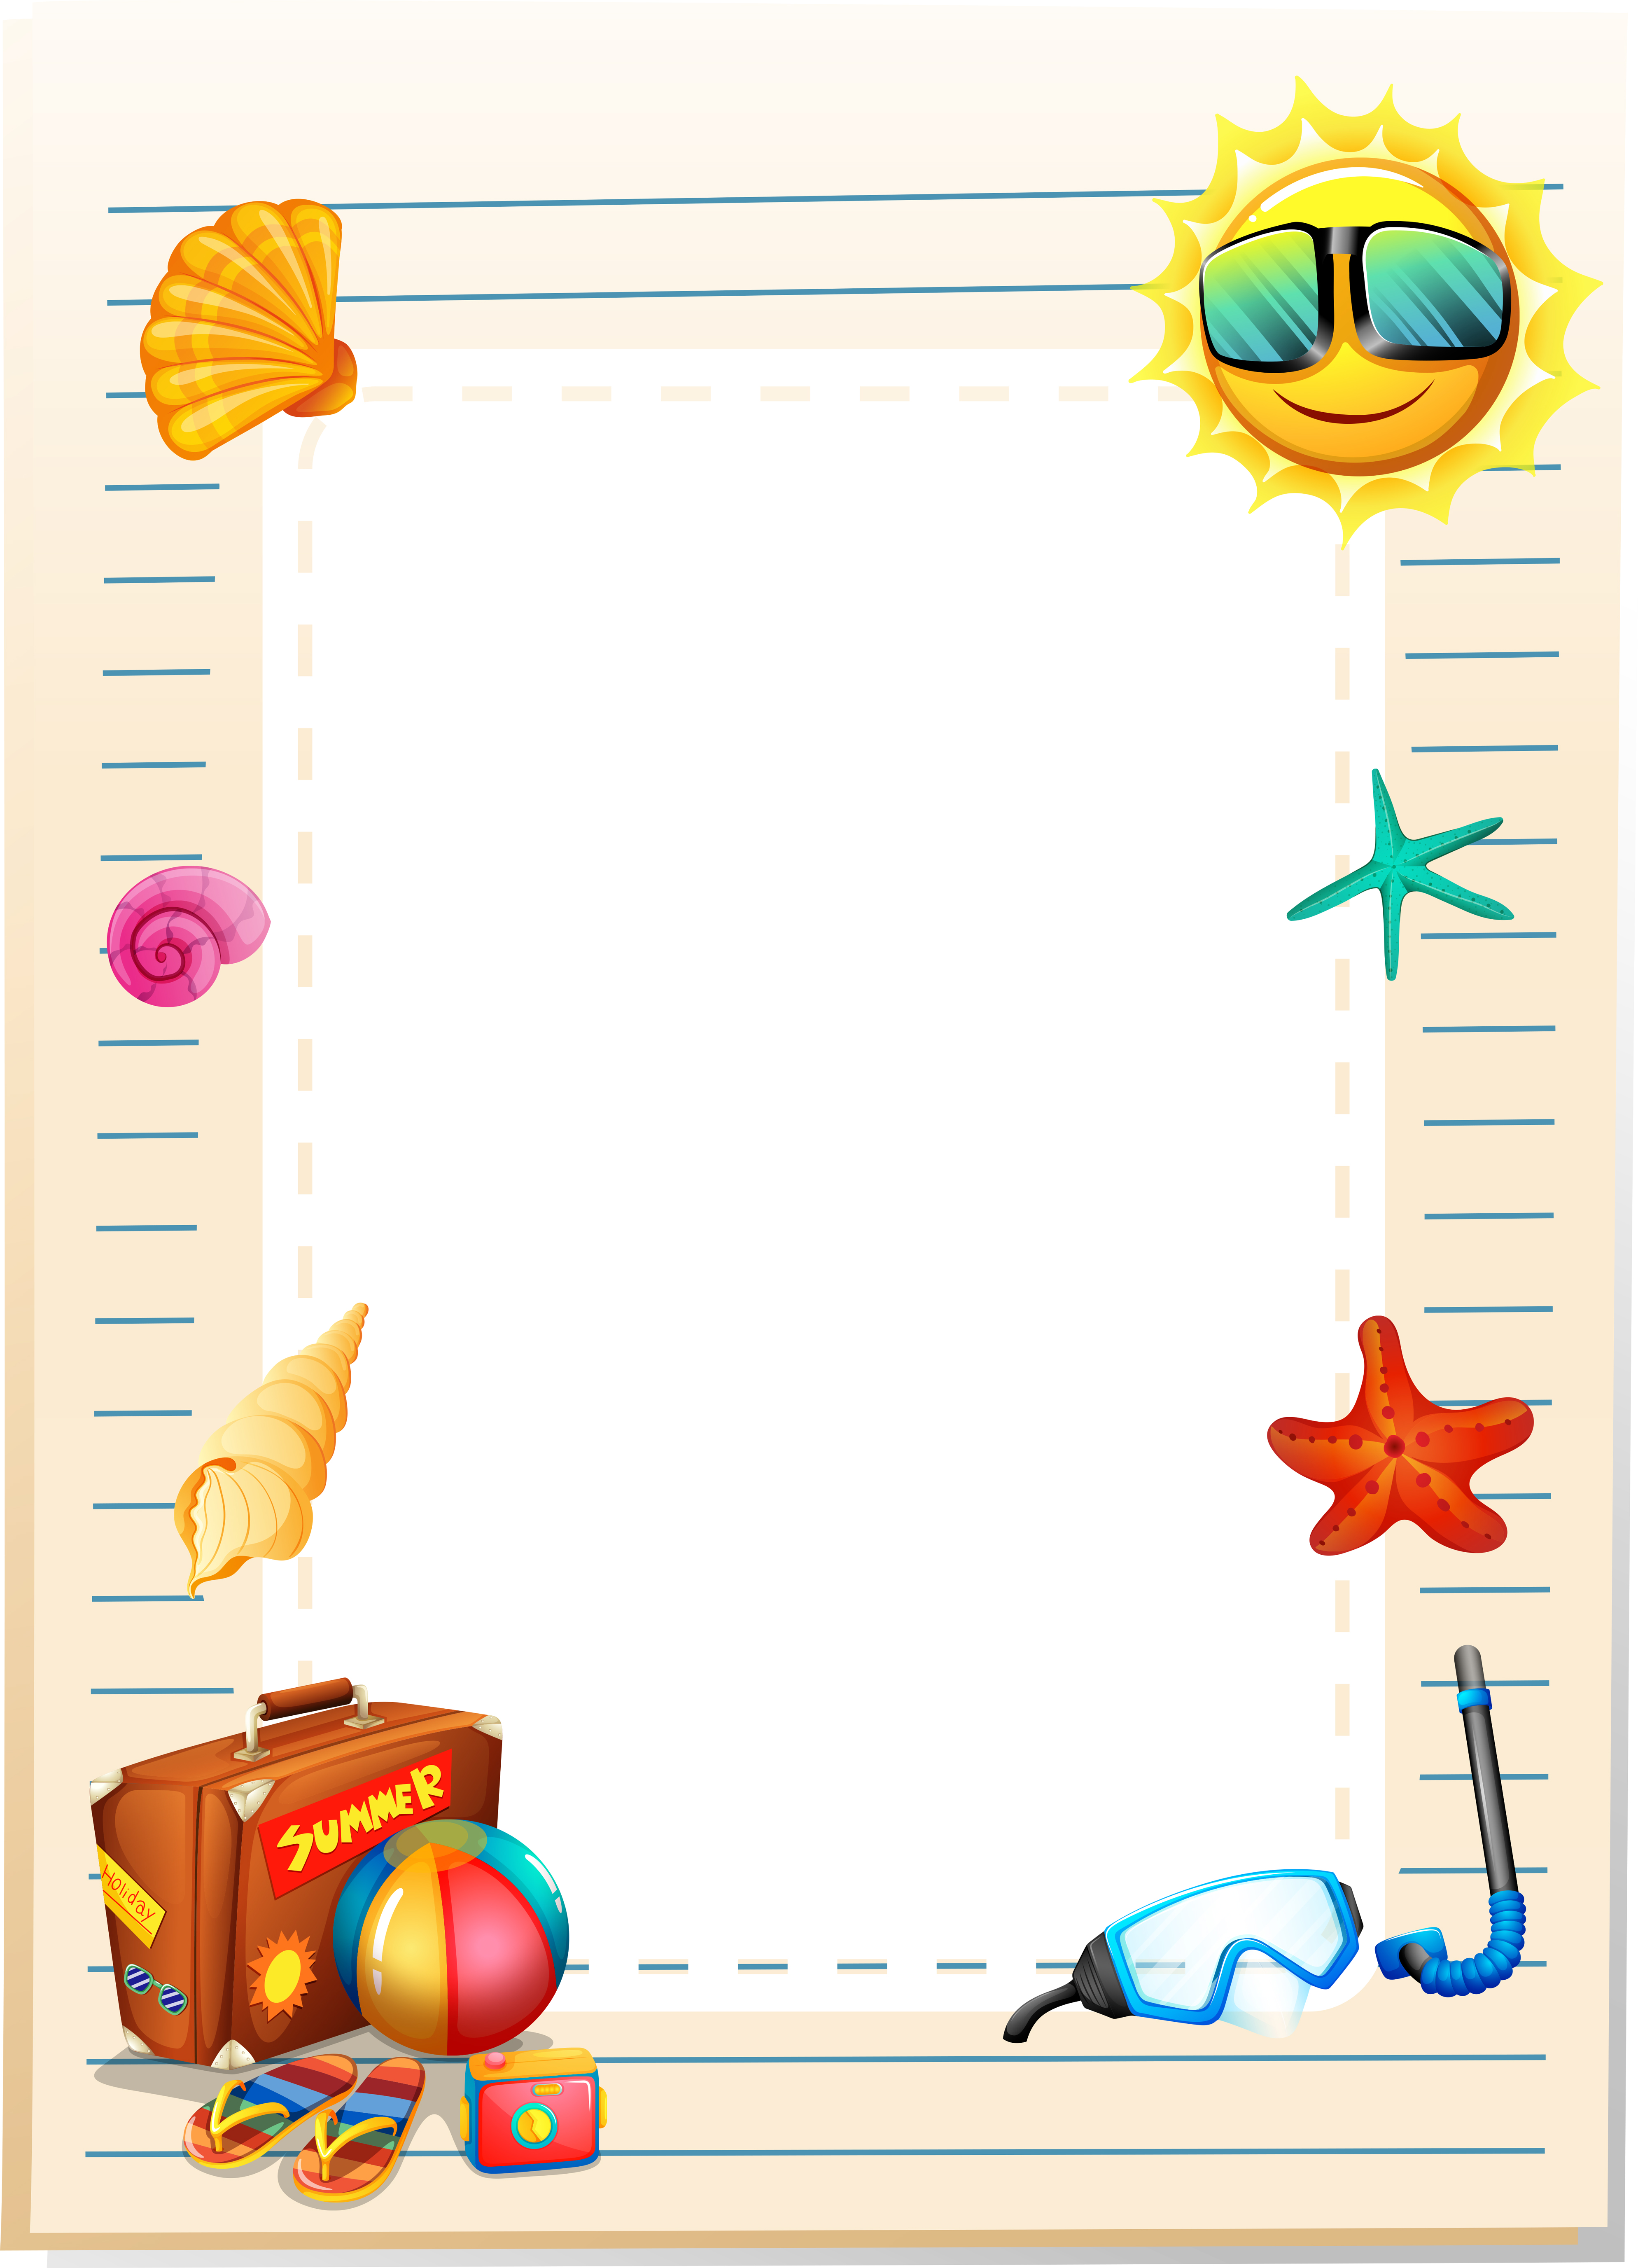 Border design with summer theme - Download Free Vectors ...